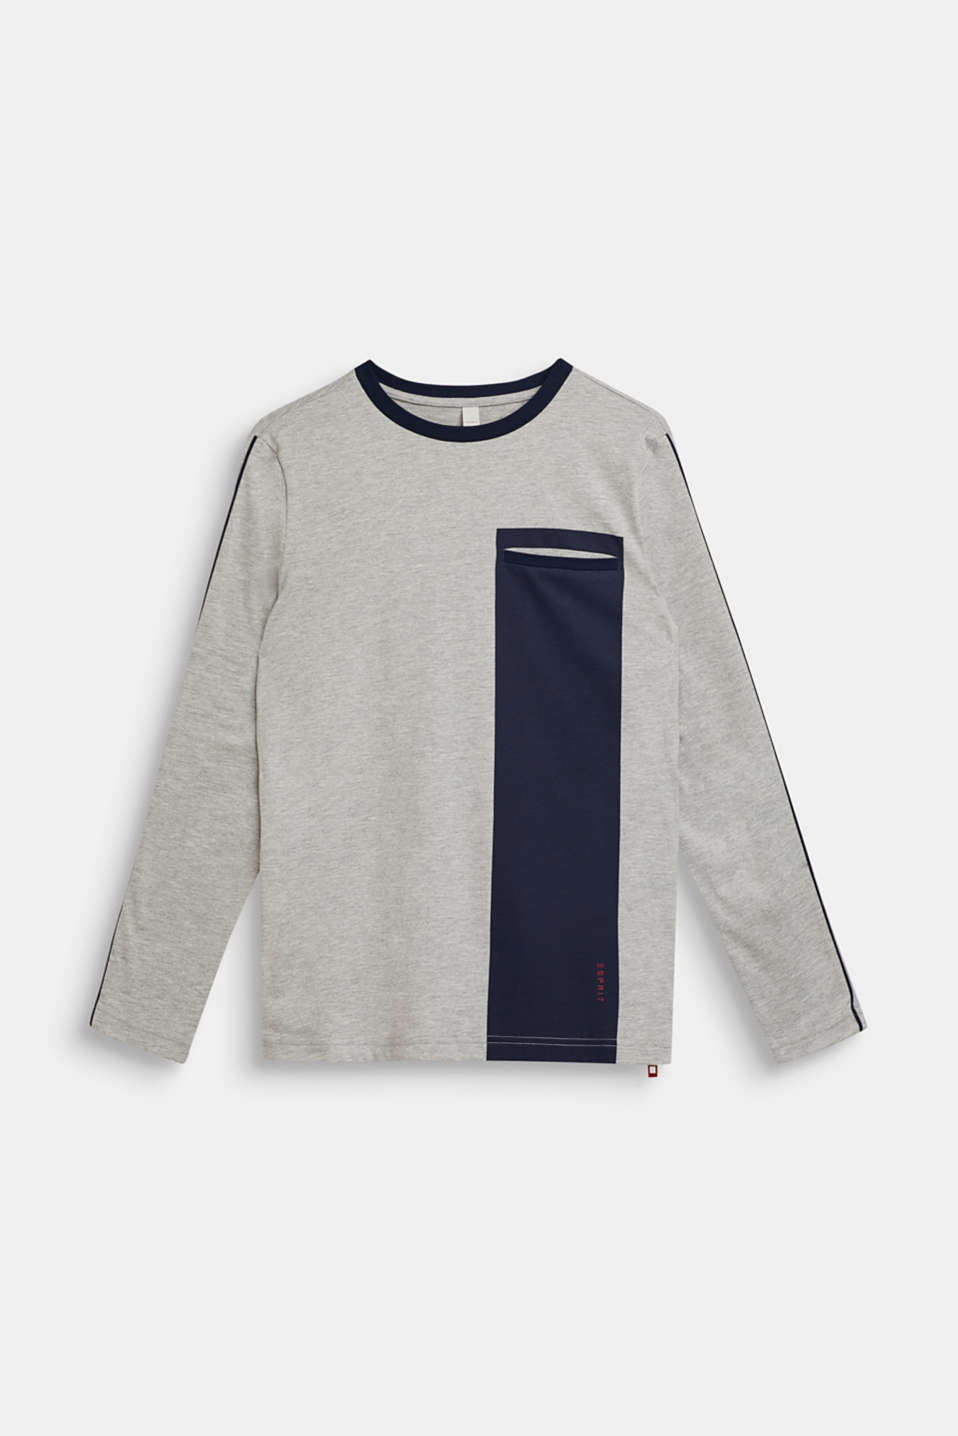 Colour block long sleeve top with a zip, LCHEATHER SILVER, detail image number 0